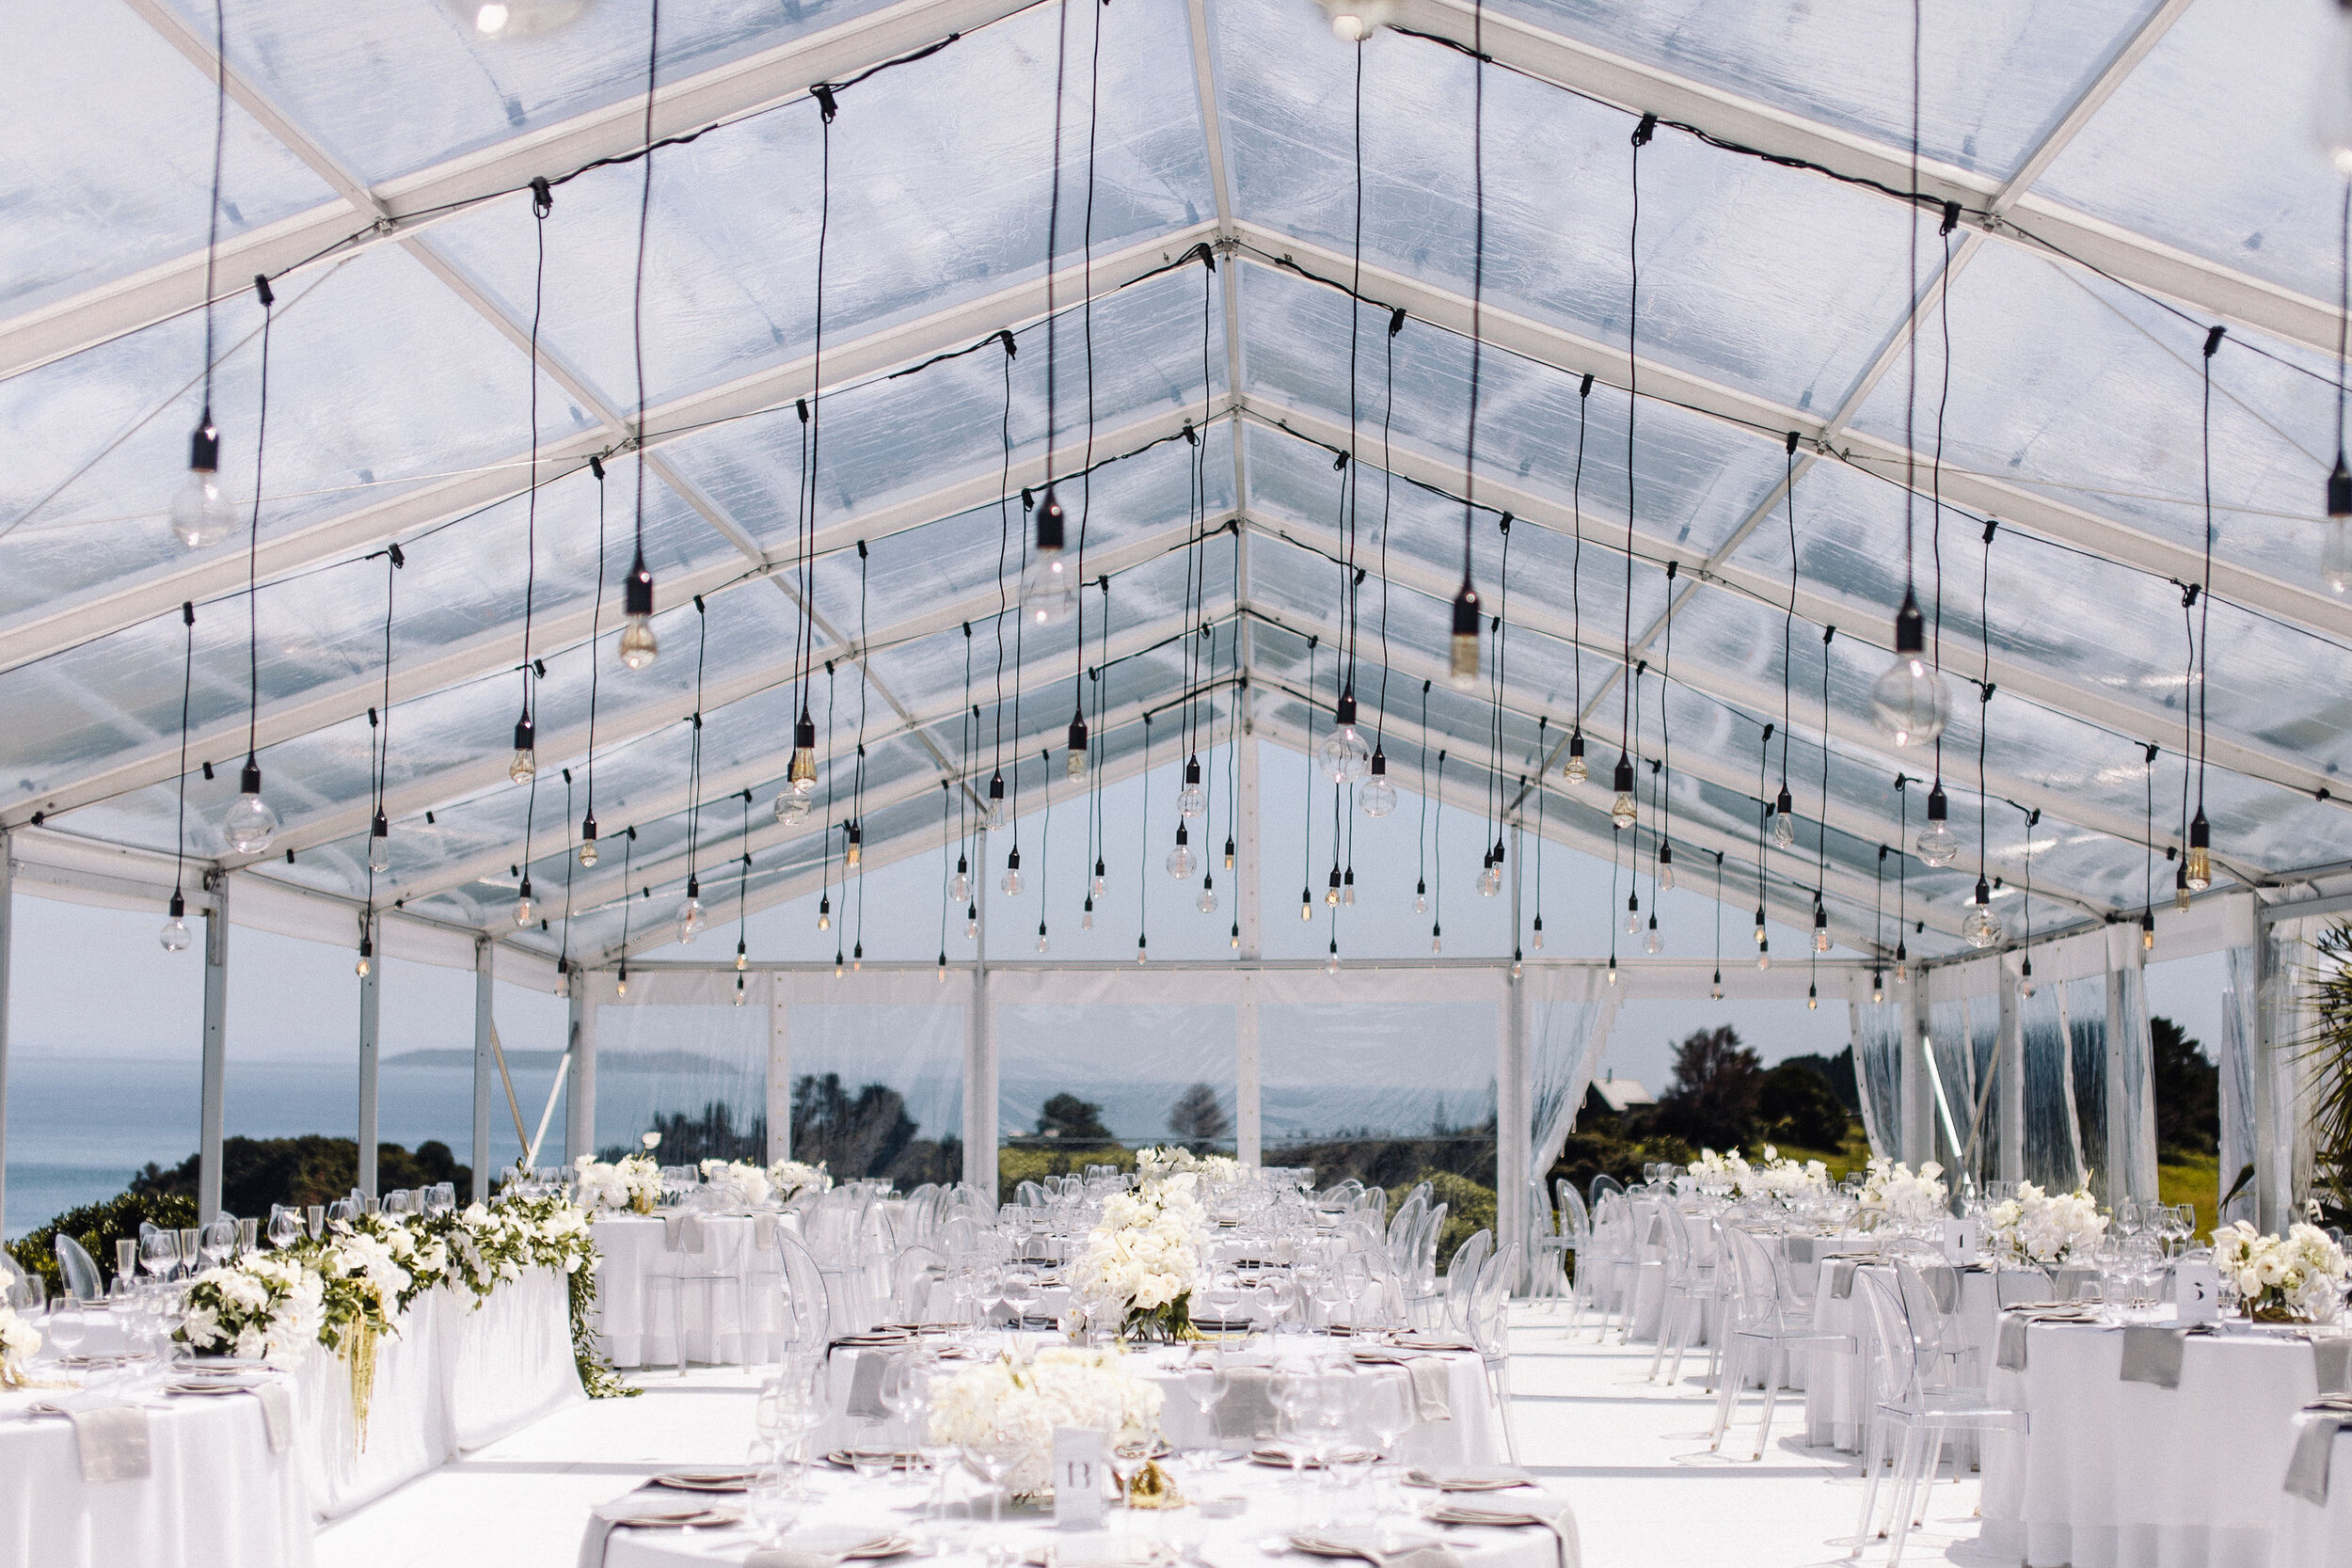 festoons with long black droppers